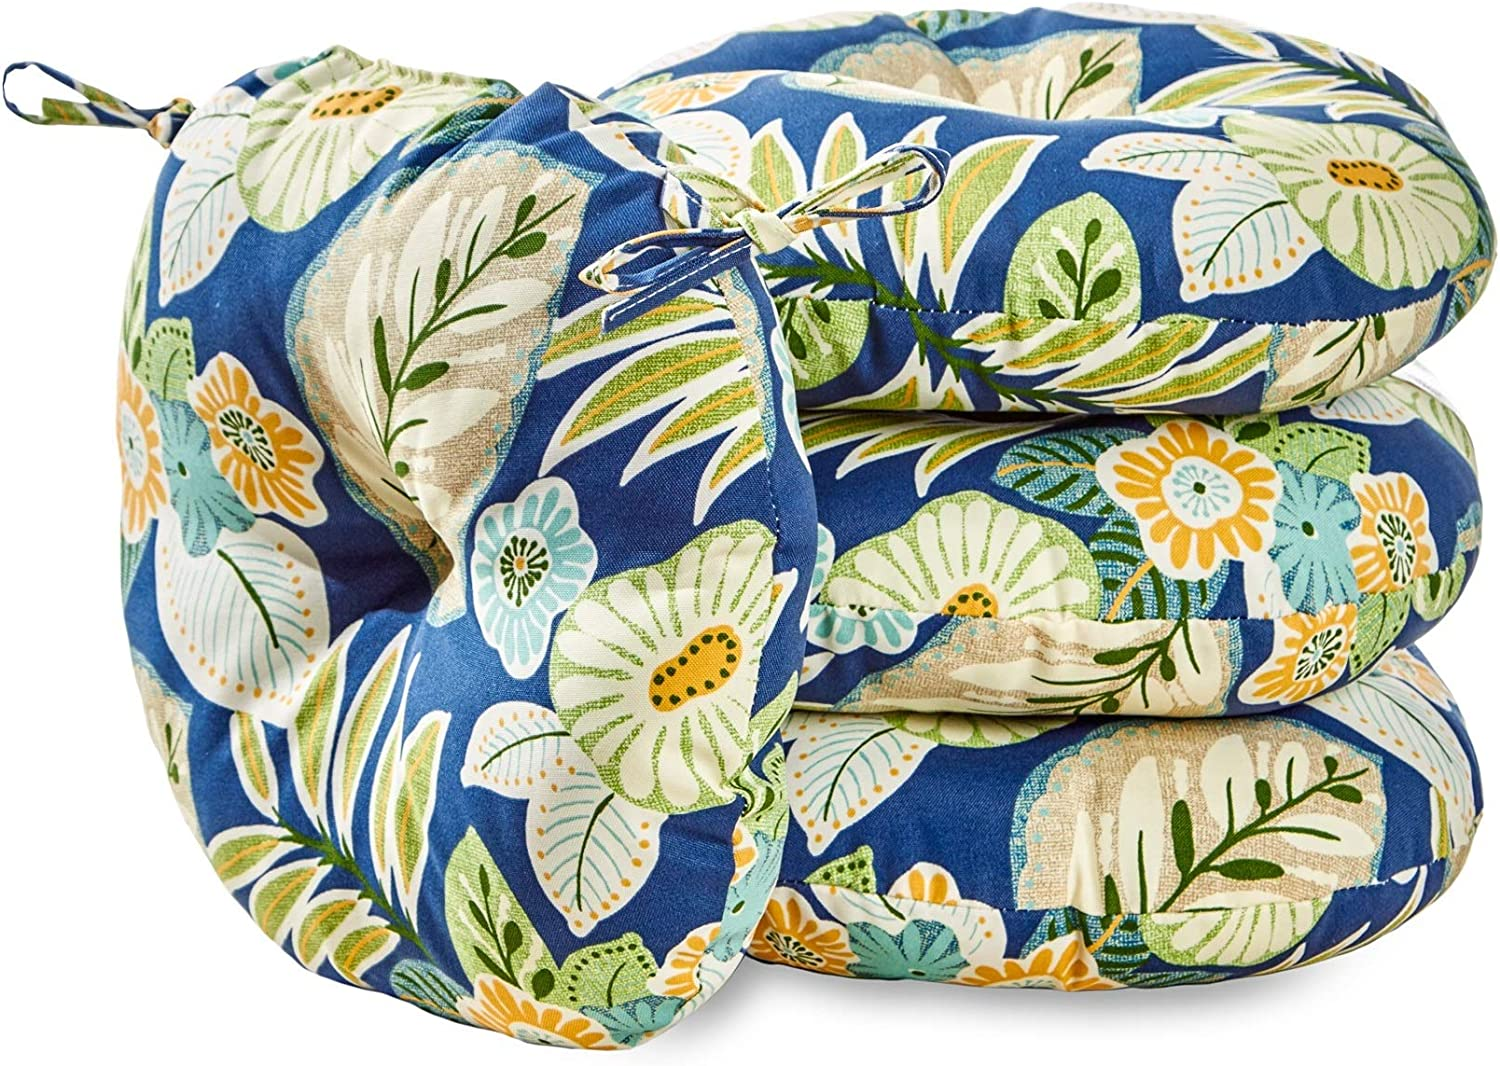 South Pine Porch AM6817S4-MARLOW Marlow Blue Floral 18-inch Round Outdoor Bistro Chair Cushion, Set of 4